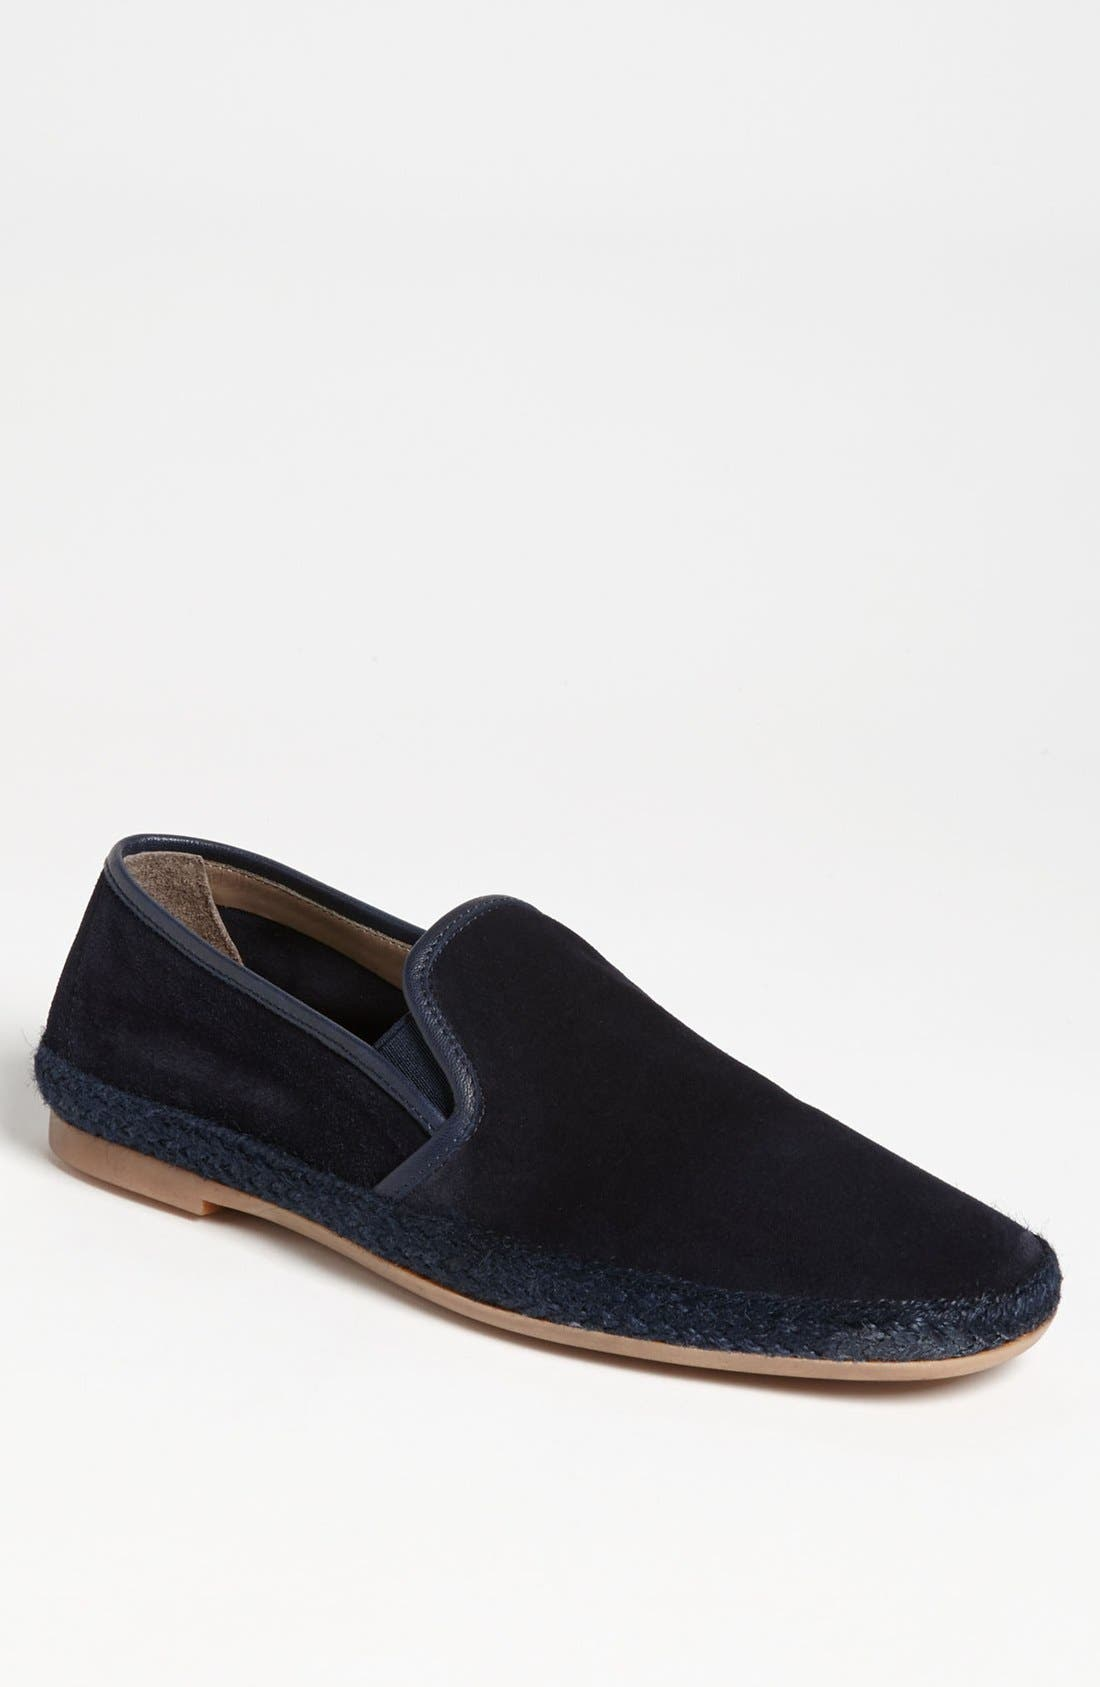 Main Image - To Boot New York 'Quentin' Loafer